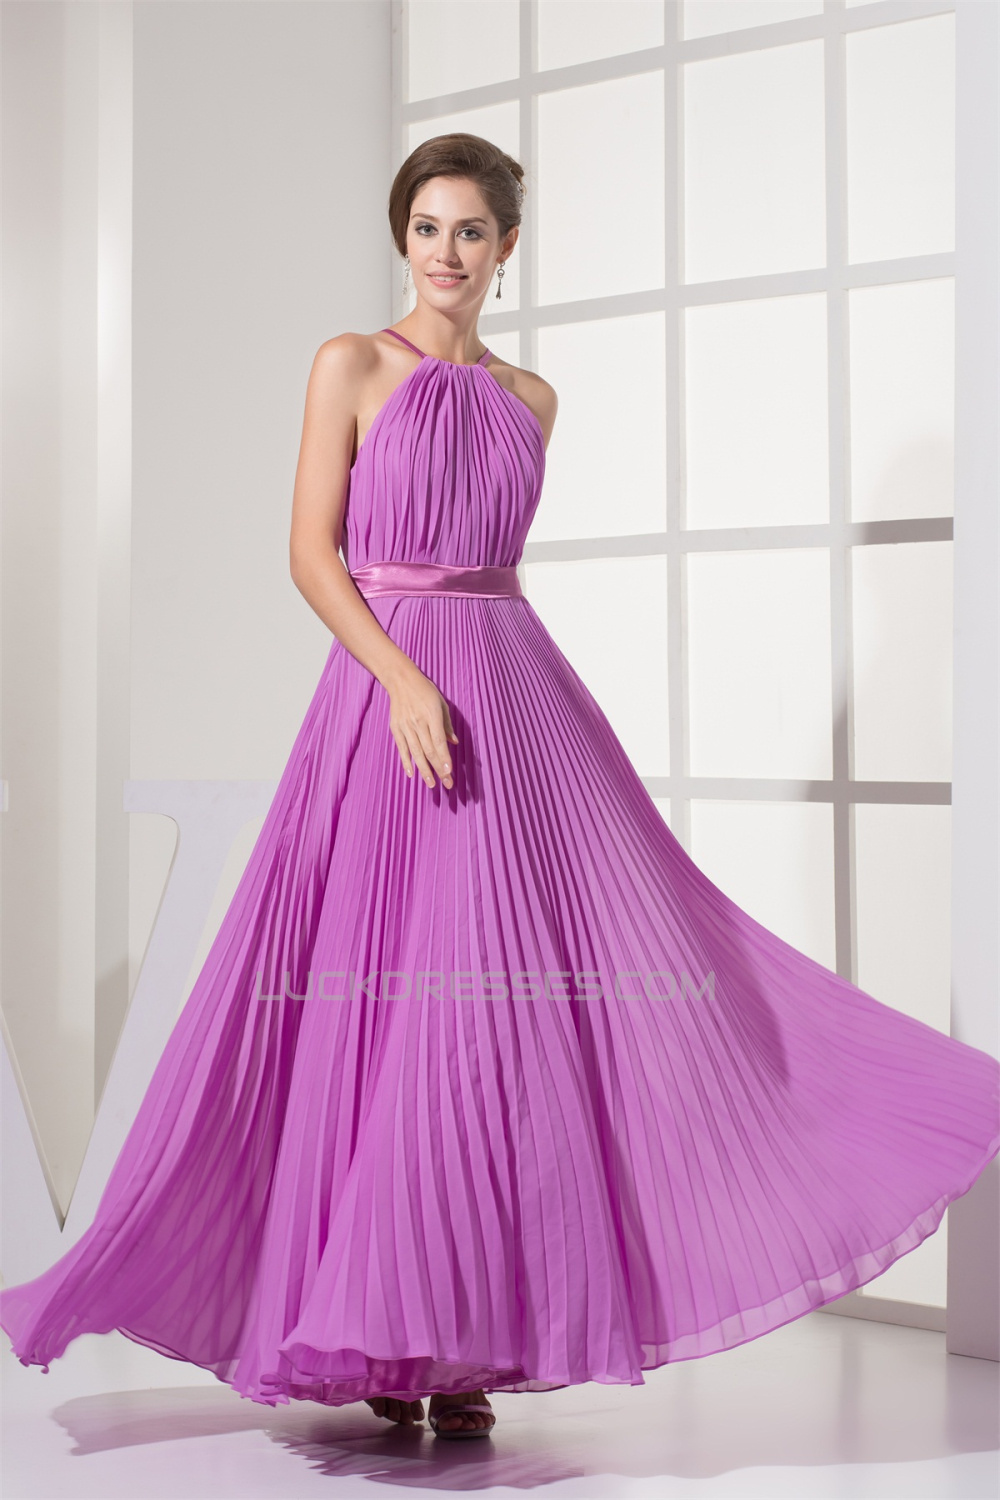 A-Line Sleeveless Pleats Floor-Length Long Bridesmaid Dresses 02010225